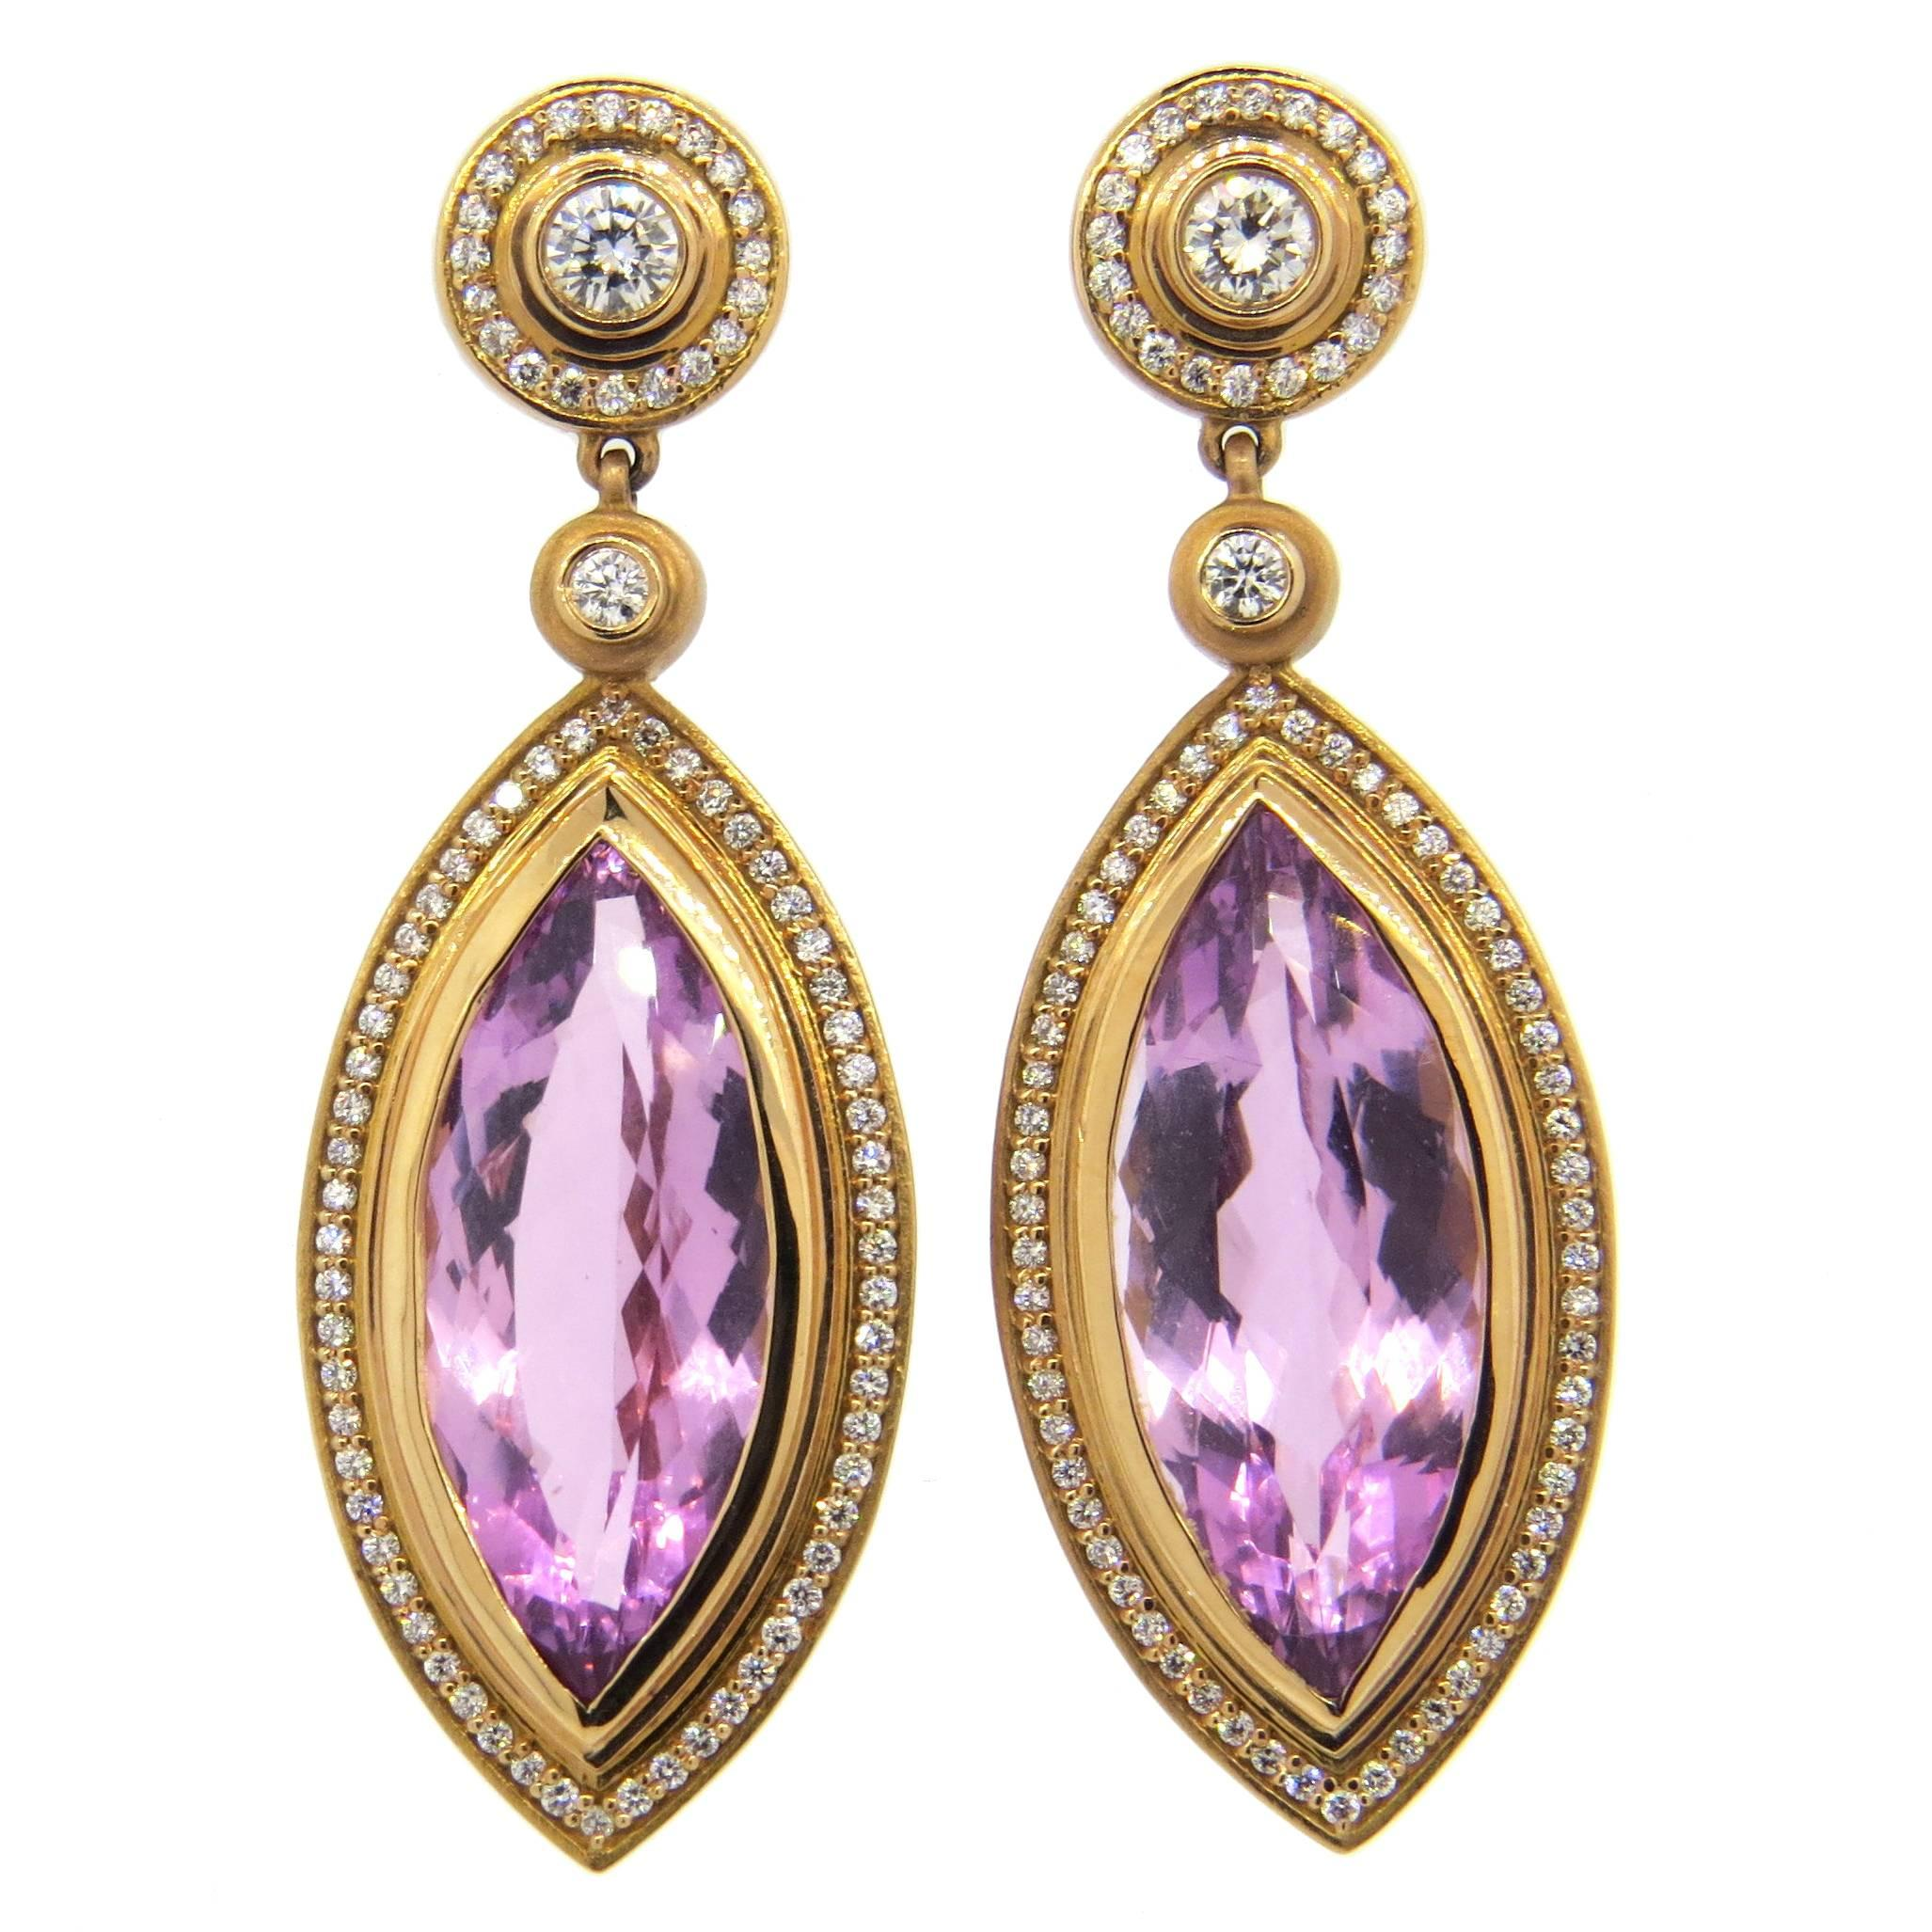 when earrings handled relatively with wrong place but the a due can in my jewelry should landed its kunzite cms sharp gemstones hard to care blow cleavage is break education be distinct